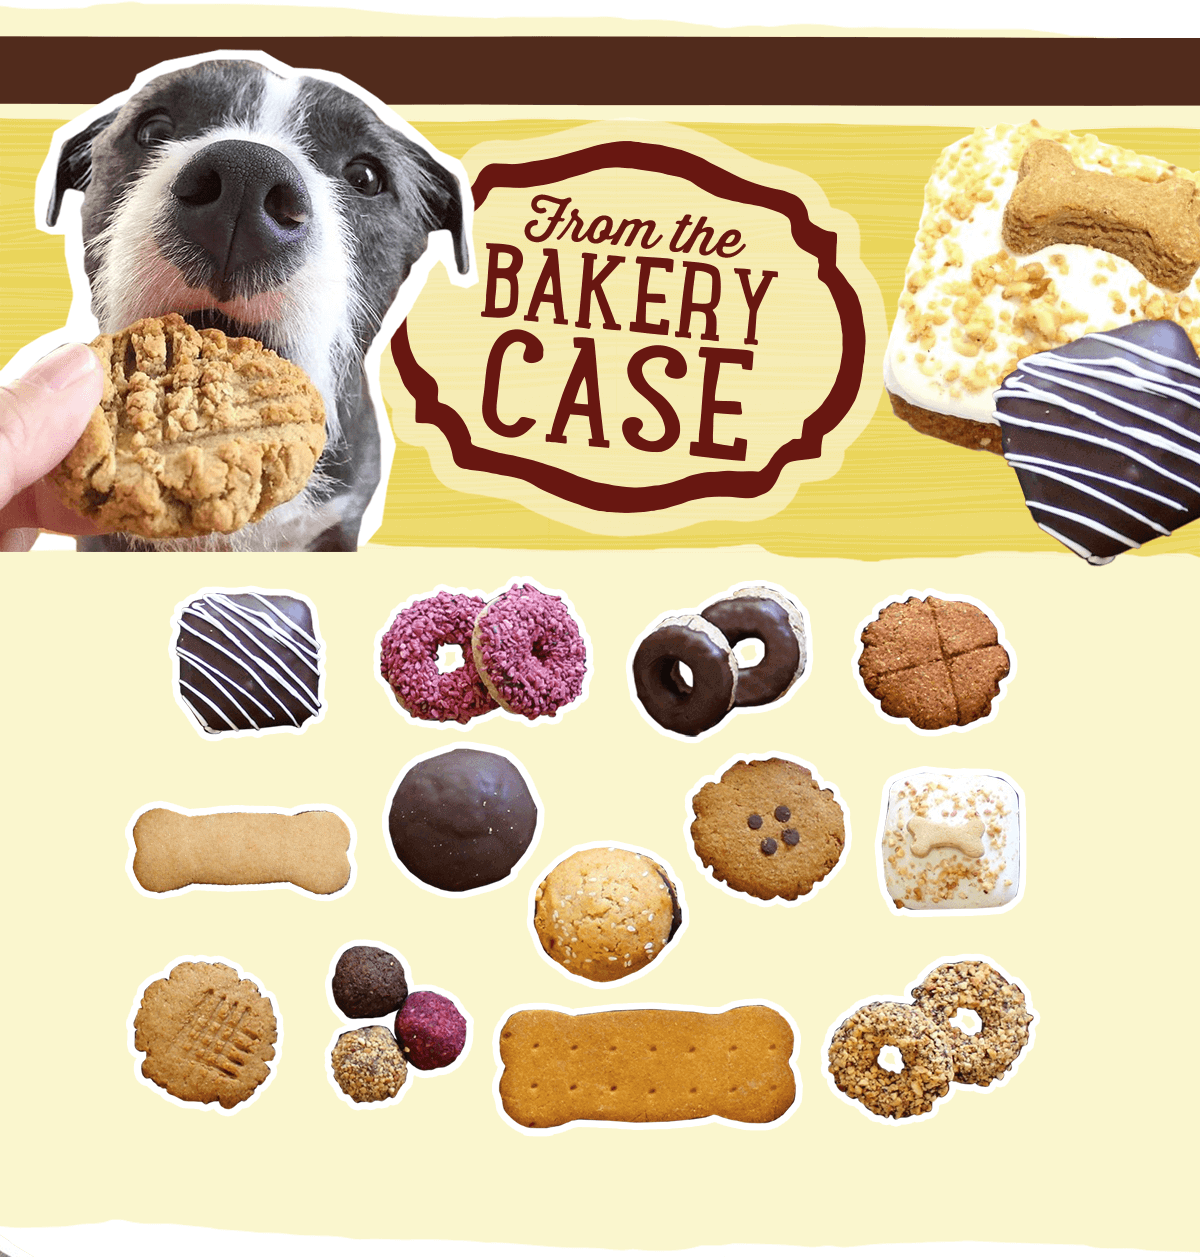 All Natural Baked Dog Food & Treats – The Dog Bakery